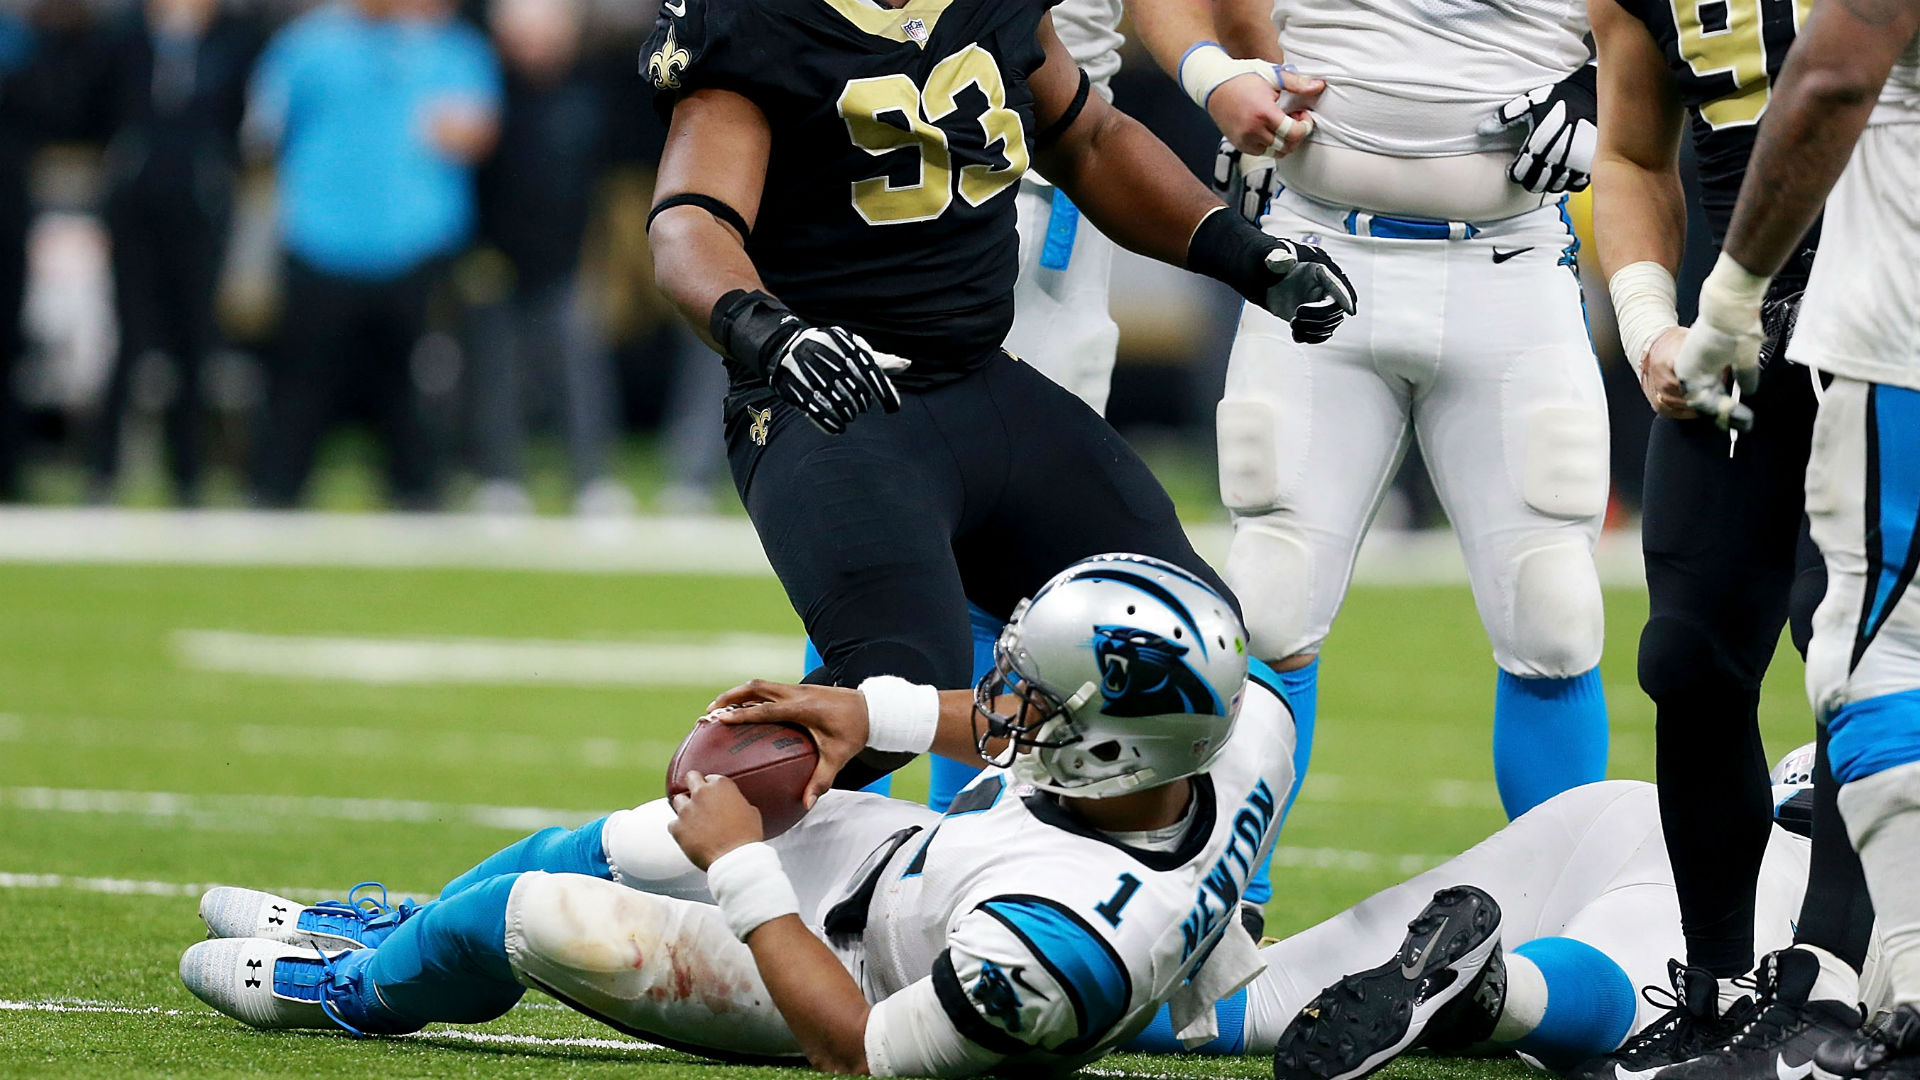 Cameron Jordan pokes fun at Cam Newton after Saints' win